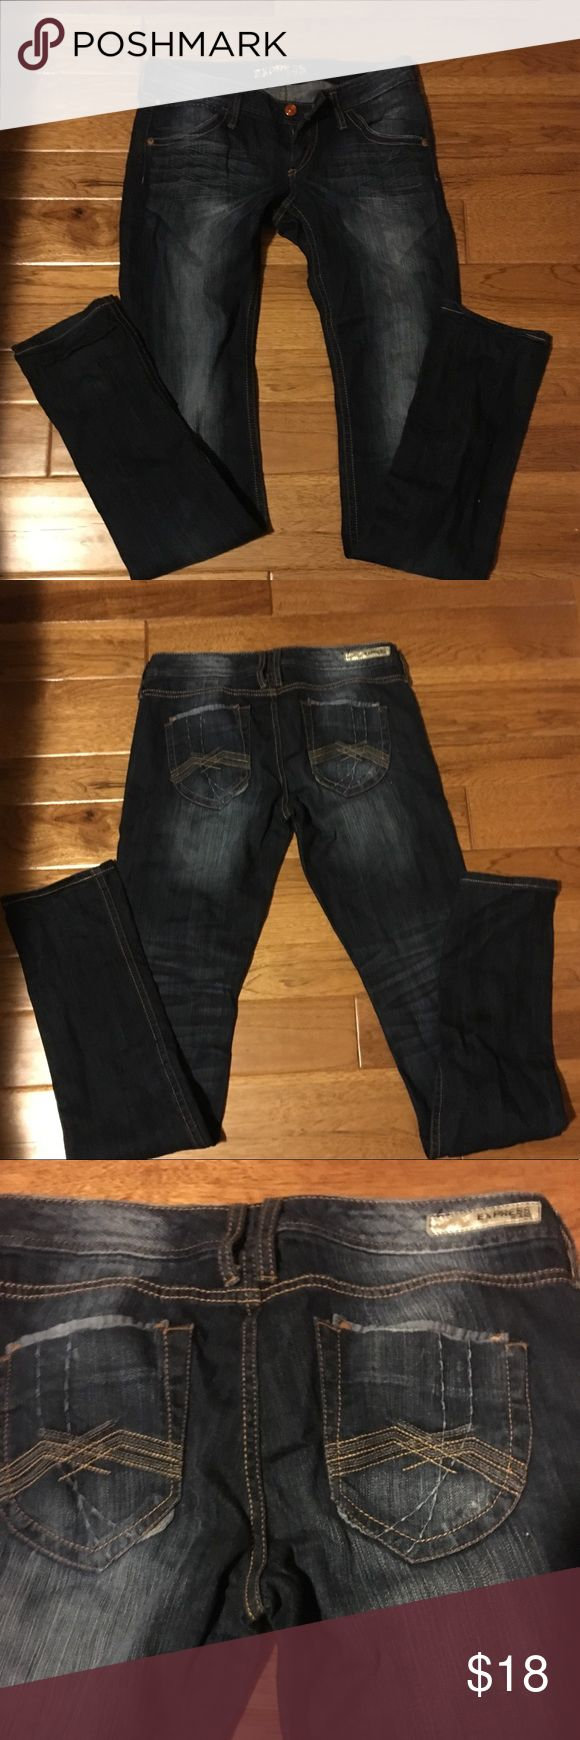 Express Zelda skinny jeans size 8 Express women's Zelda skinny jeans size 8. Purchased and worn two times (because I eat too much and couldn't fit into them anymore haha).  Great condition. Make me an offer! Express Jeans Skinny